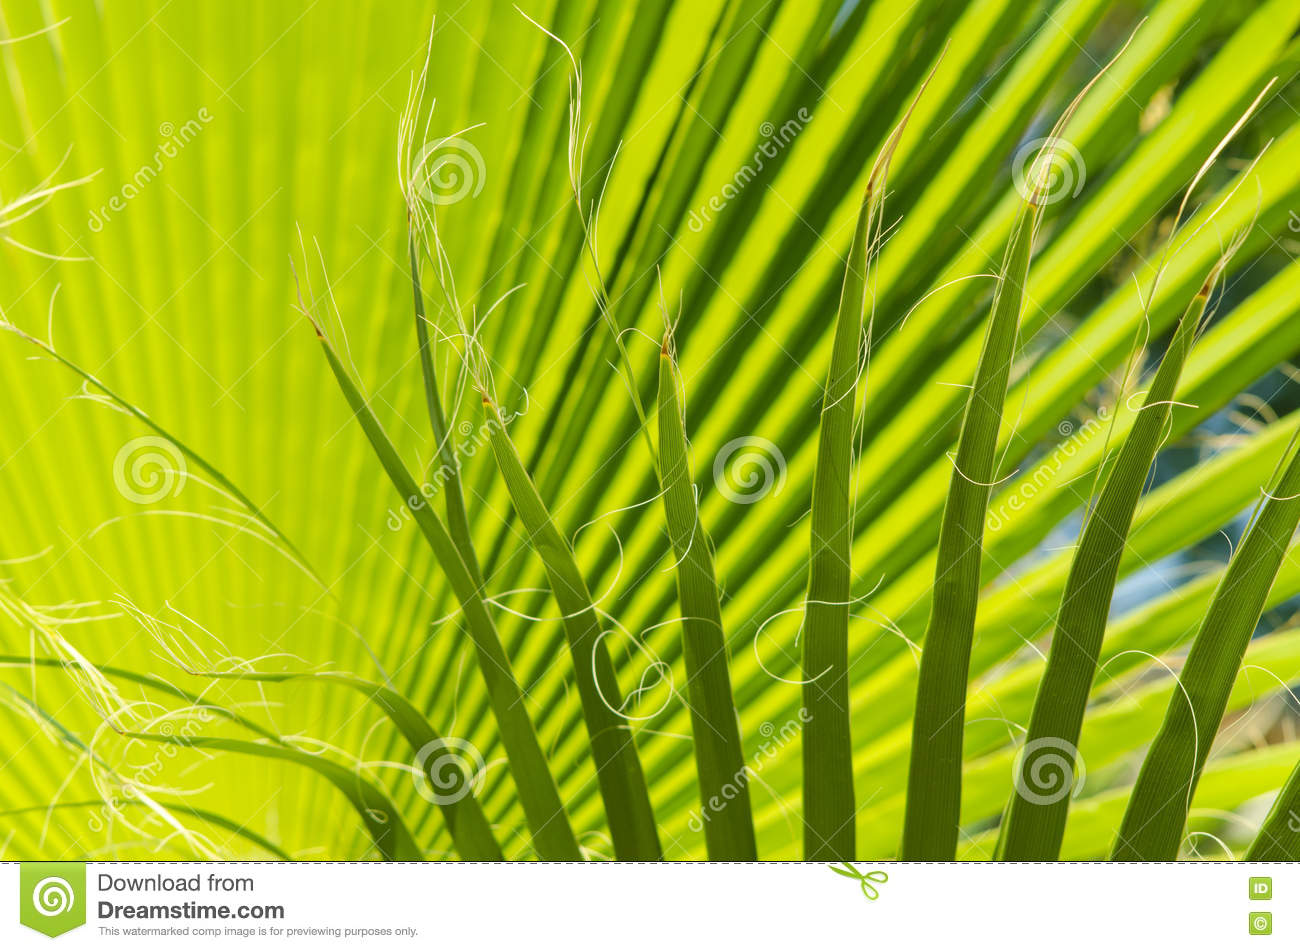 Tropical Palm Leaves Close Up View Of Fresh Green Palm Tree Leaf Stock Photo Image Of Color Coconut 75408192 Sign up for free and download 15 free images every day! tropical palm leaves close up view of fresh green palm tree leaf stock photo image of color coconut 75408192